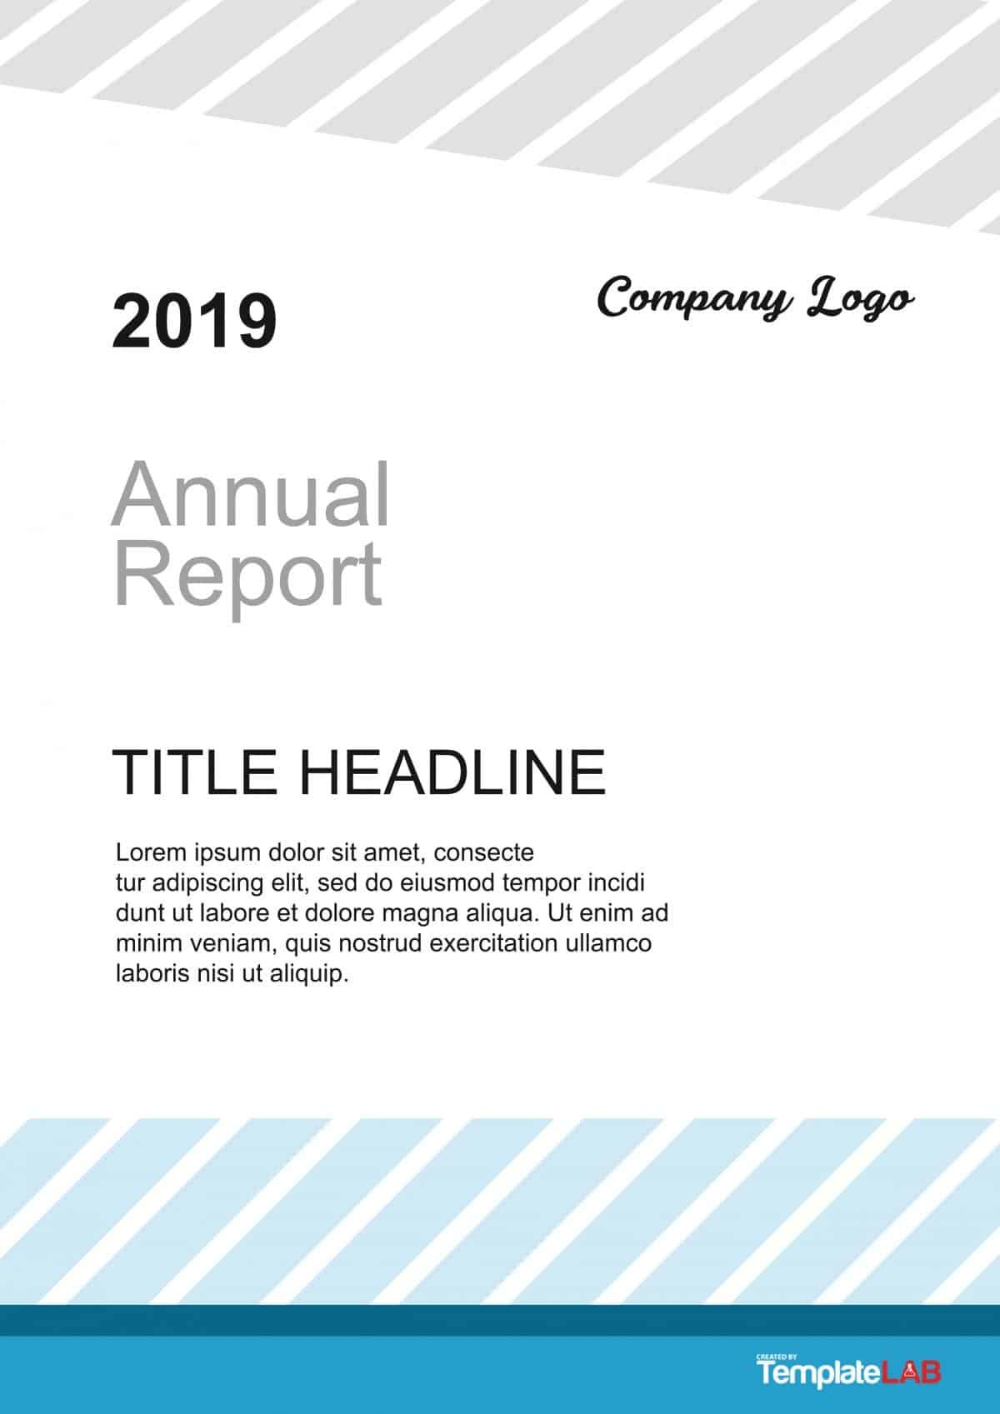 Amazing Cover Page Templates Word Psd ᐅ Template Lab Within Technical Report Cover Page Templa Cover Page Template Word Cover Page Template Title Page Template